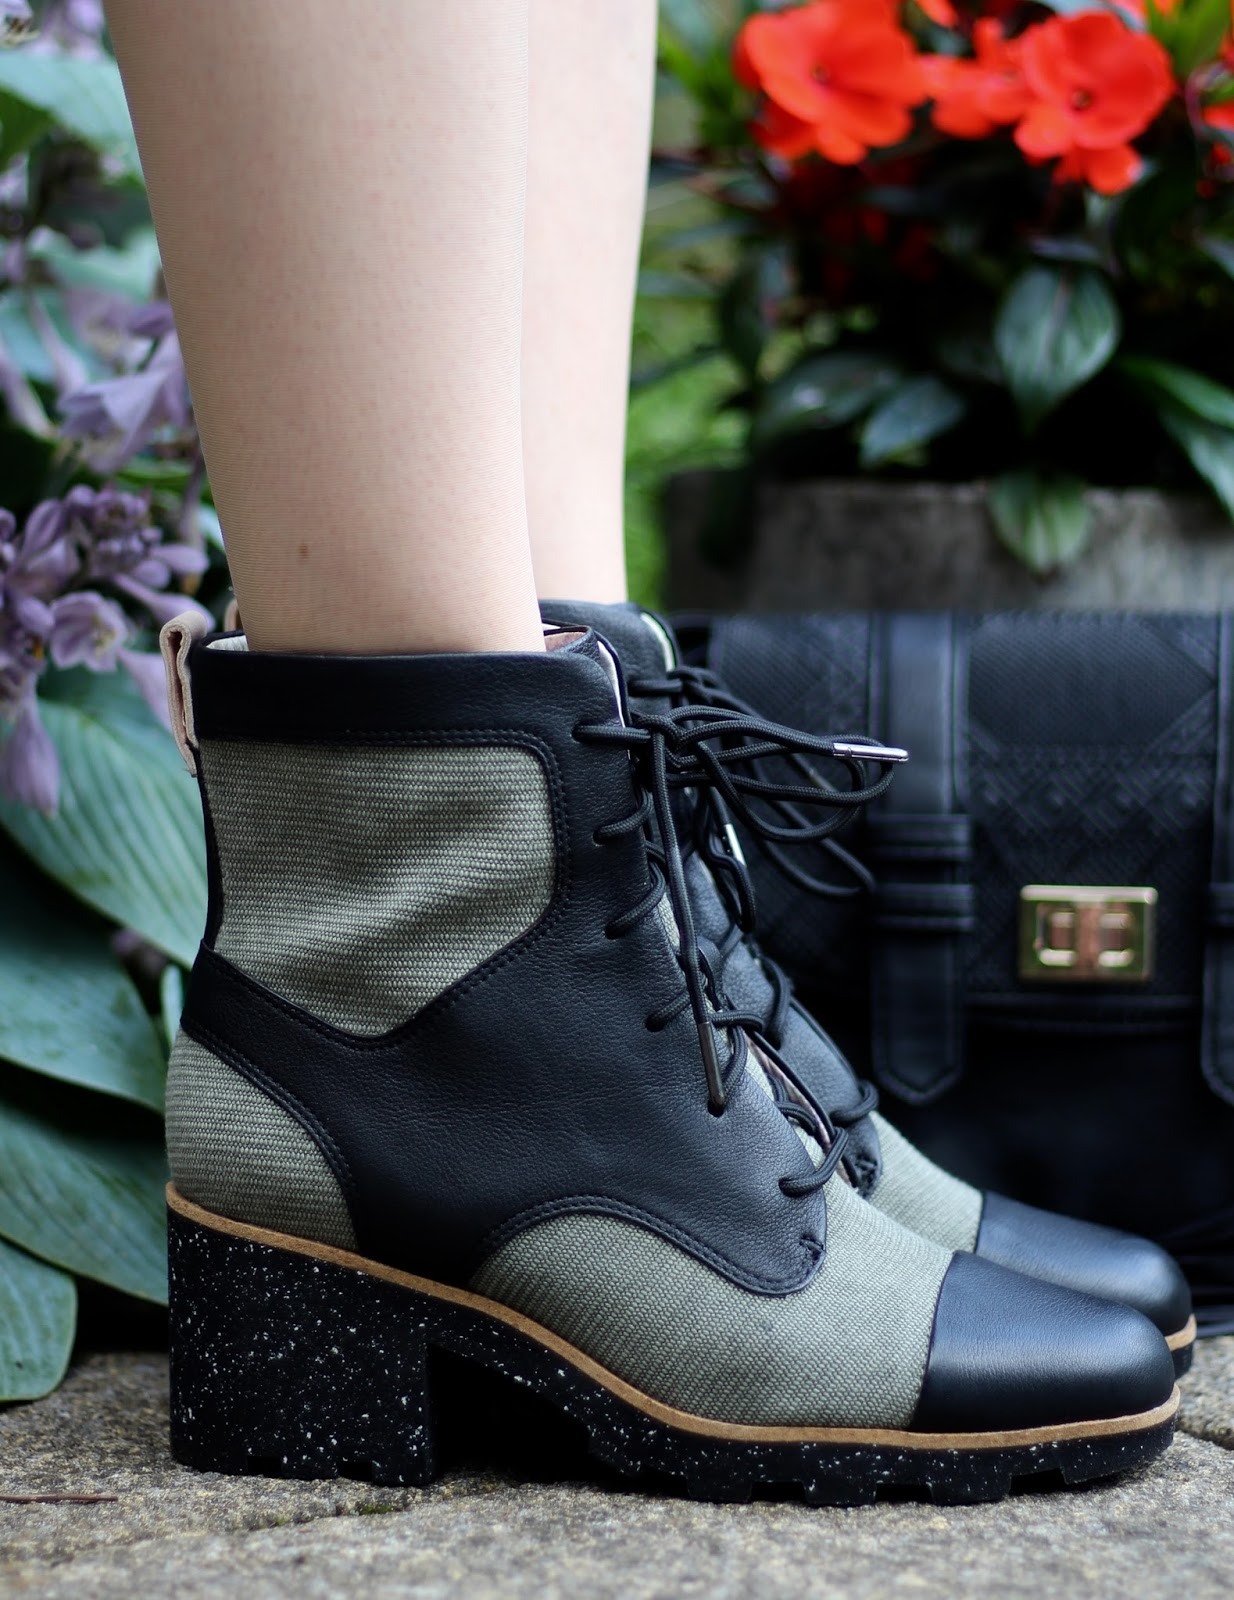 Fake Fabulous | Chunky Christopher Raeburn boots, green t-shirt dress, skull scarf, over 40.